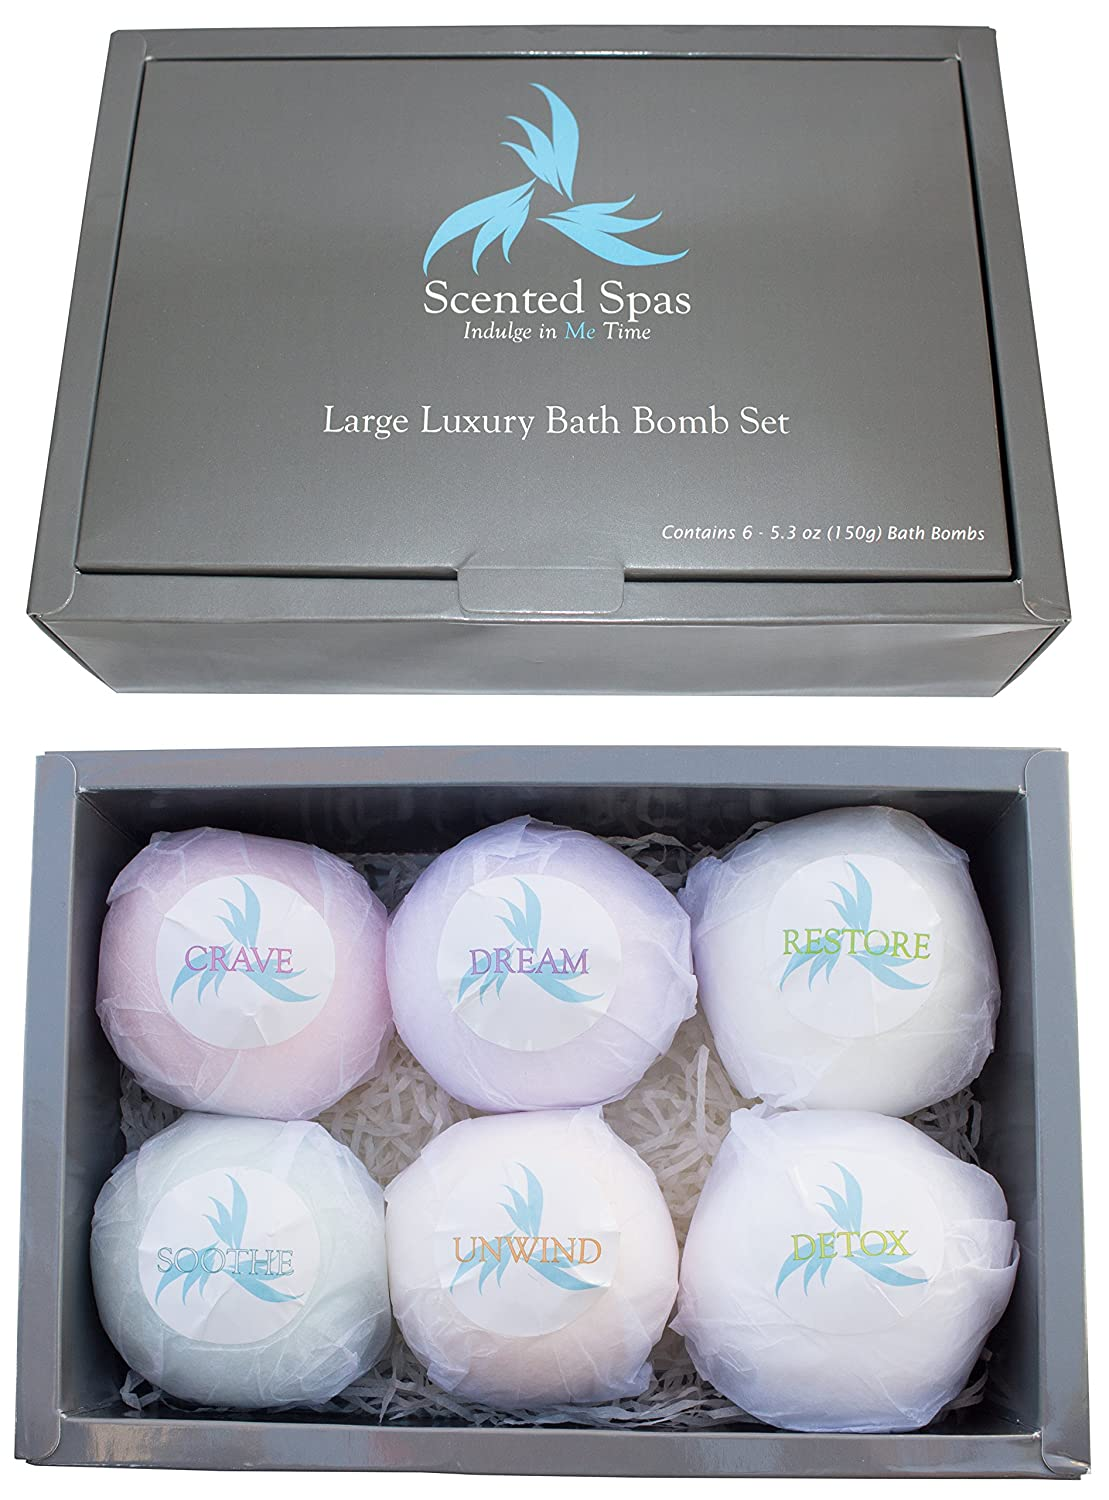 Large Luxury Bath Bombs; Set of 6 - 5.3oz (150g) Bombs - Extra Big For Huge Tubs - Vanilla, Lavender, Eucalyptus, Peppermint, Honeysuckle, Lemon - Great Lush Gift Set For Mother